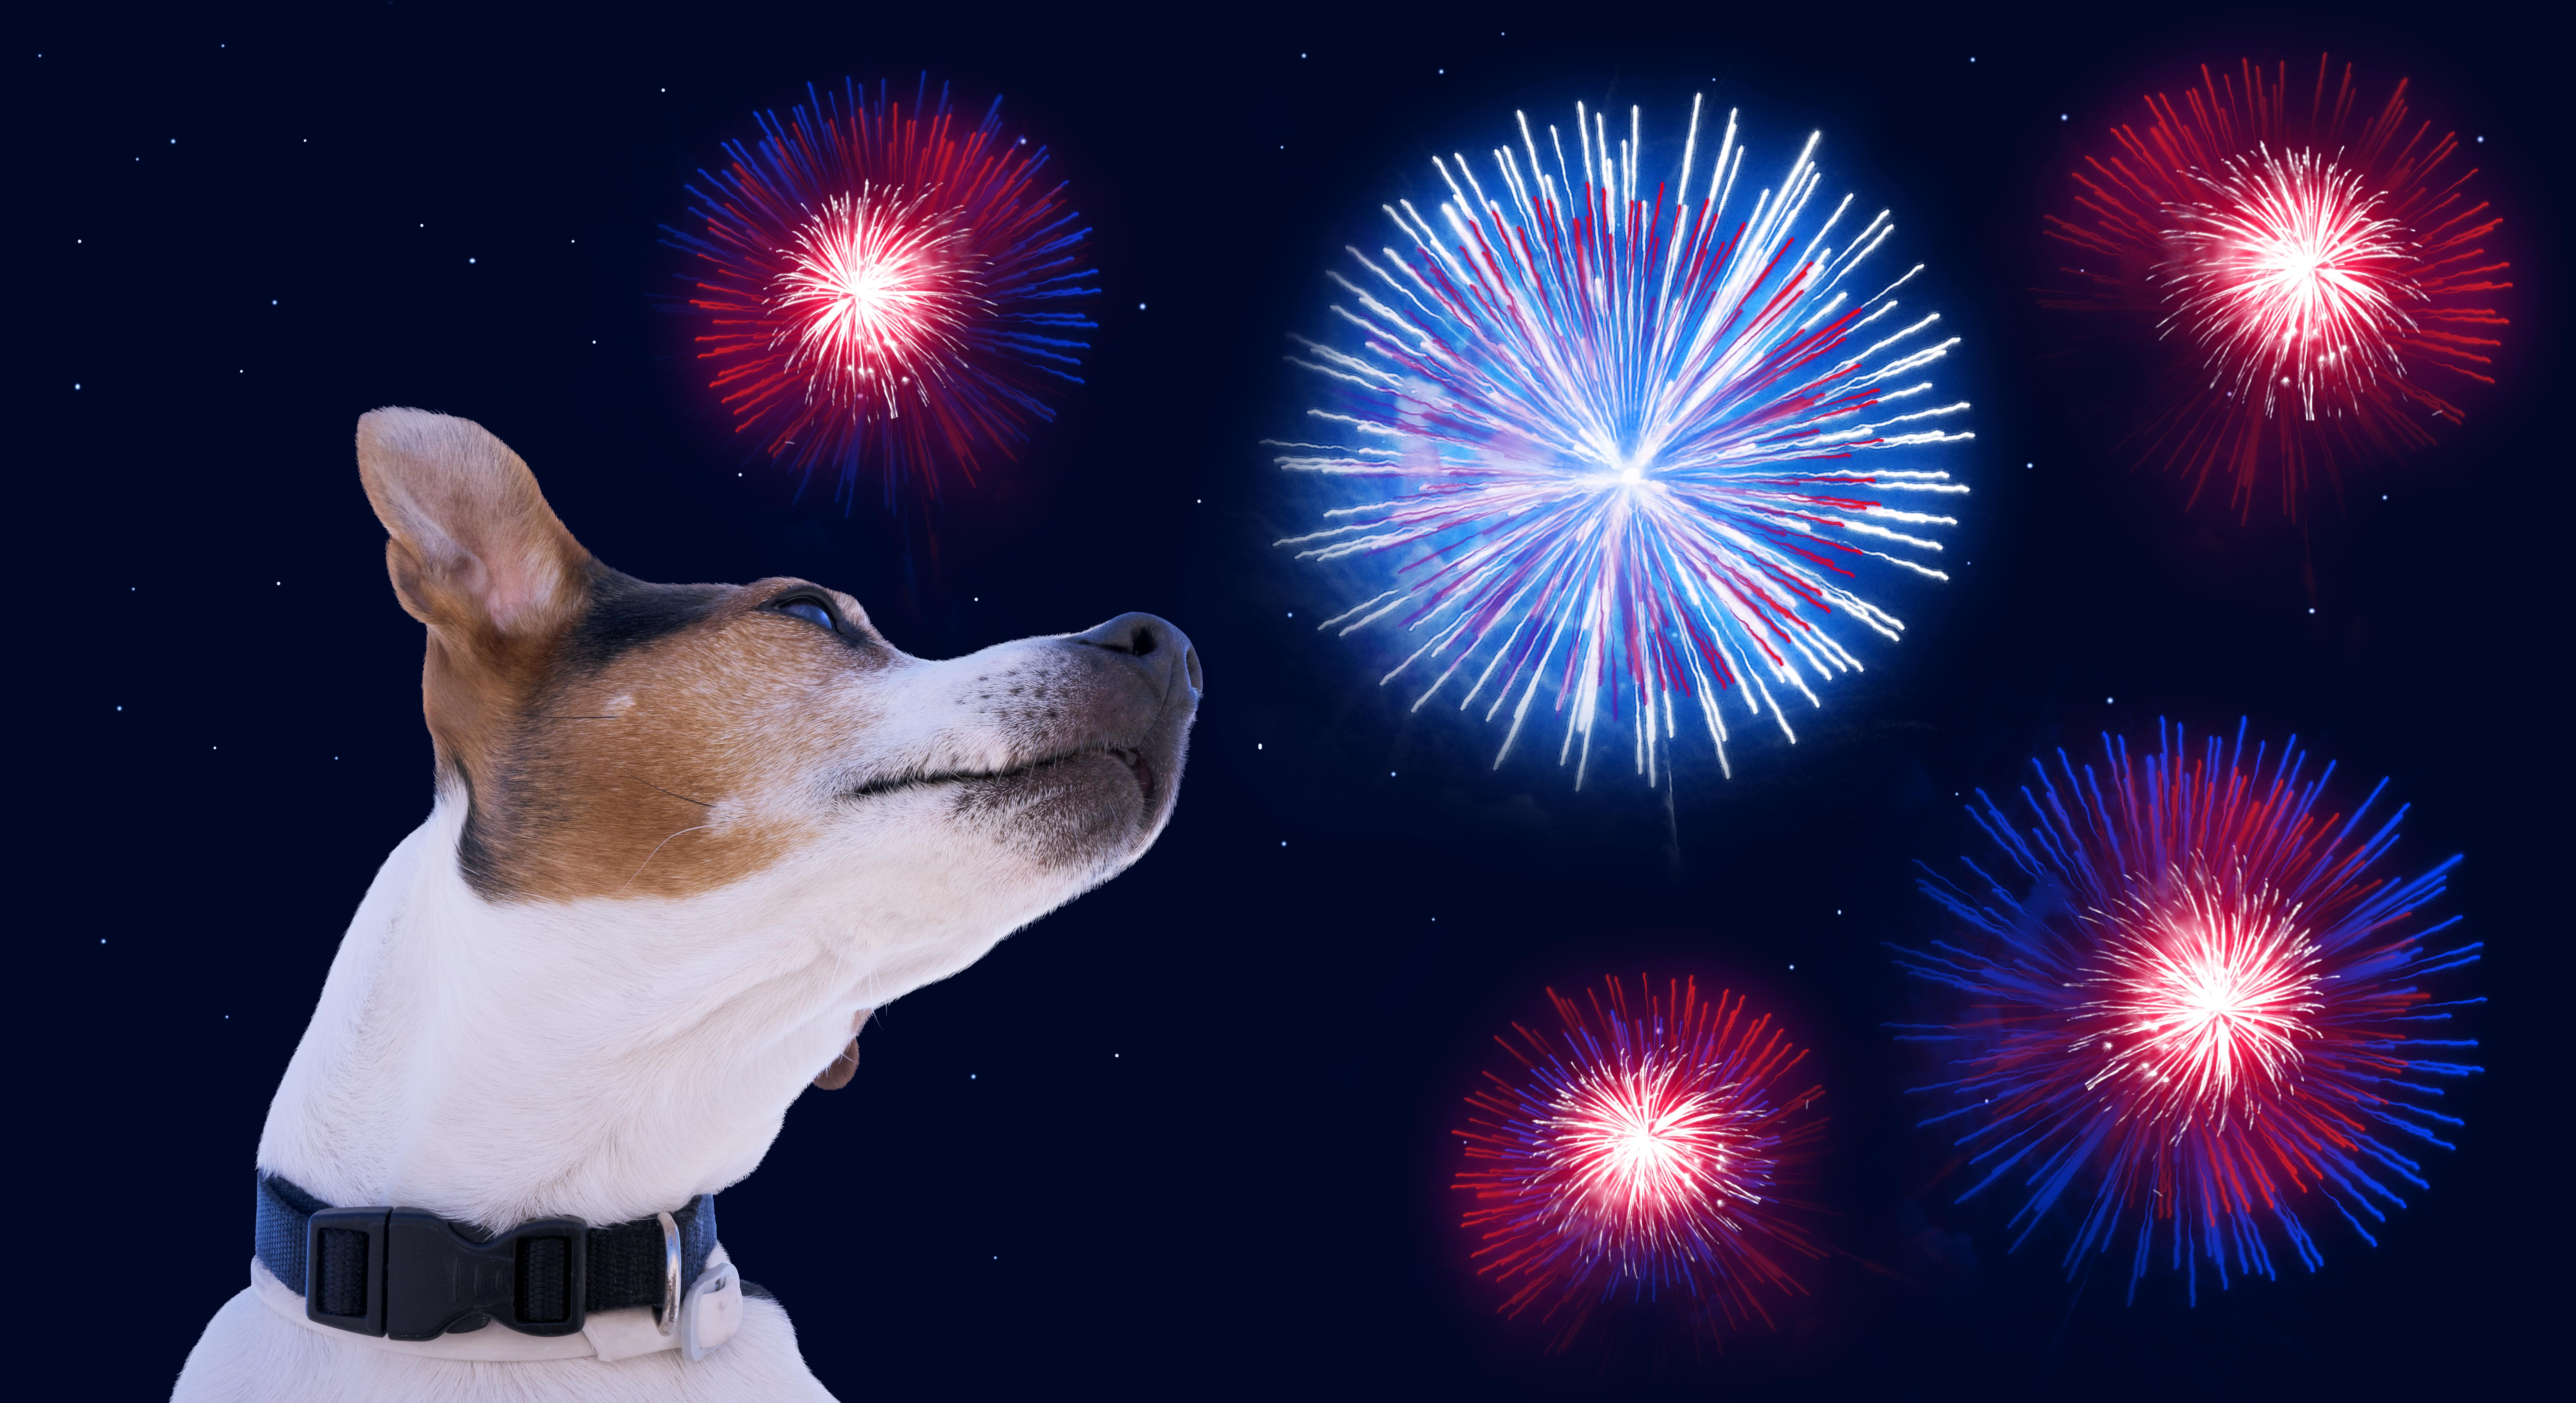 Keeping your dog safe when the fireworks start | 5 Key Tips